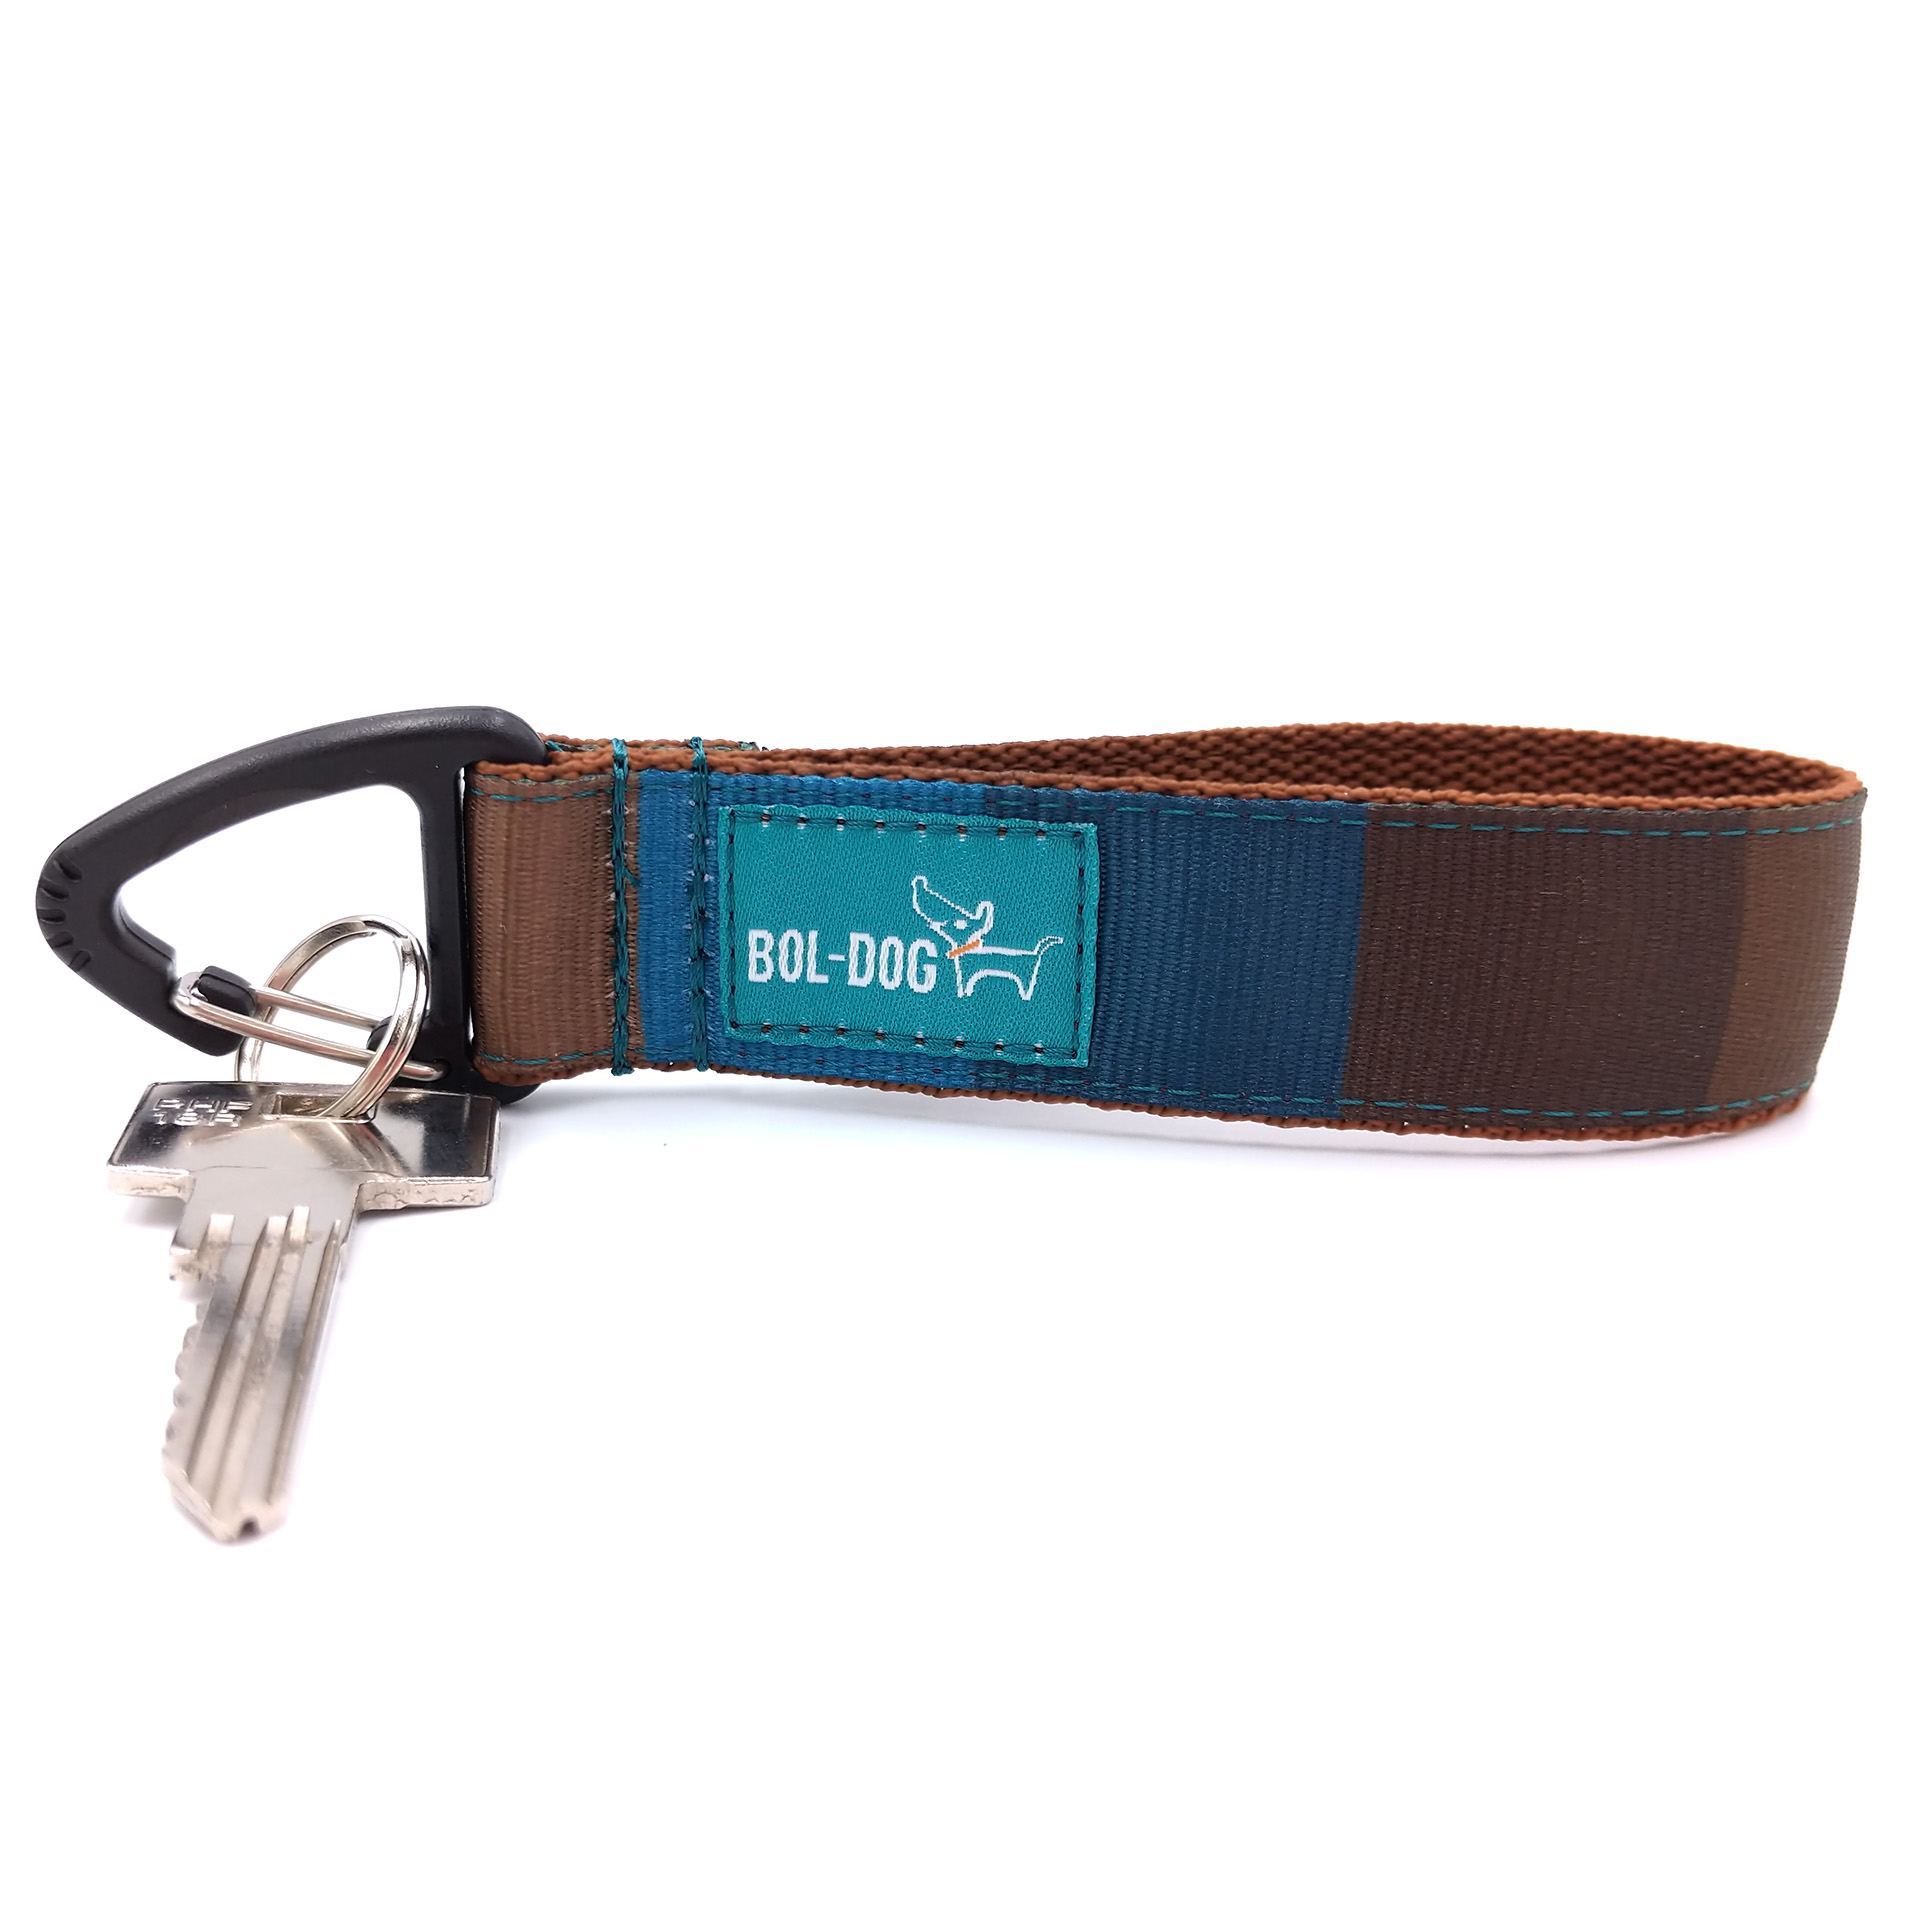 Brownblue key holder